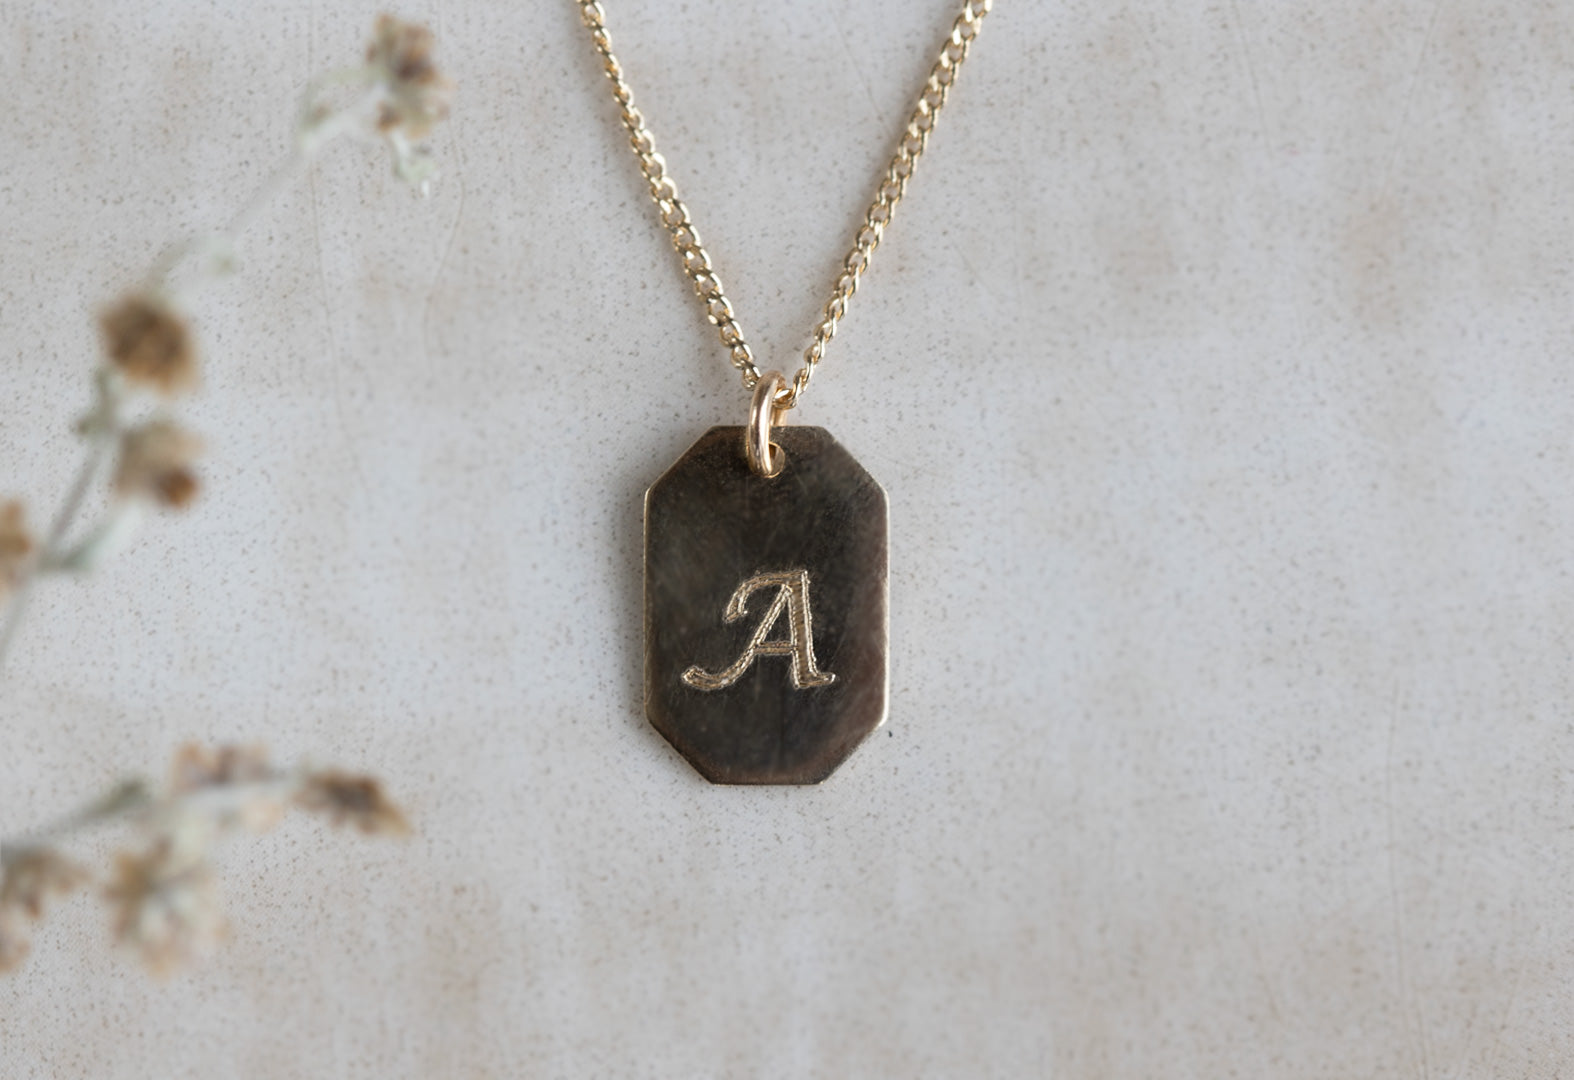 Featuring The Personalized 14k Gold Dog Tag Necklace